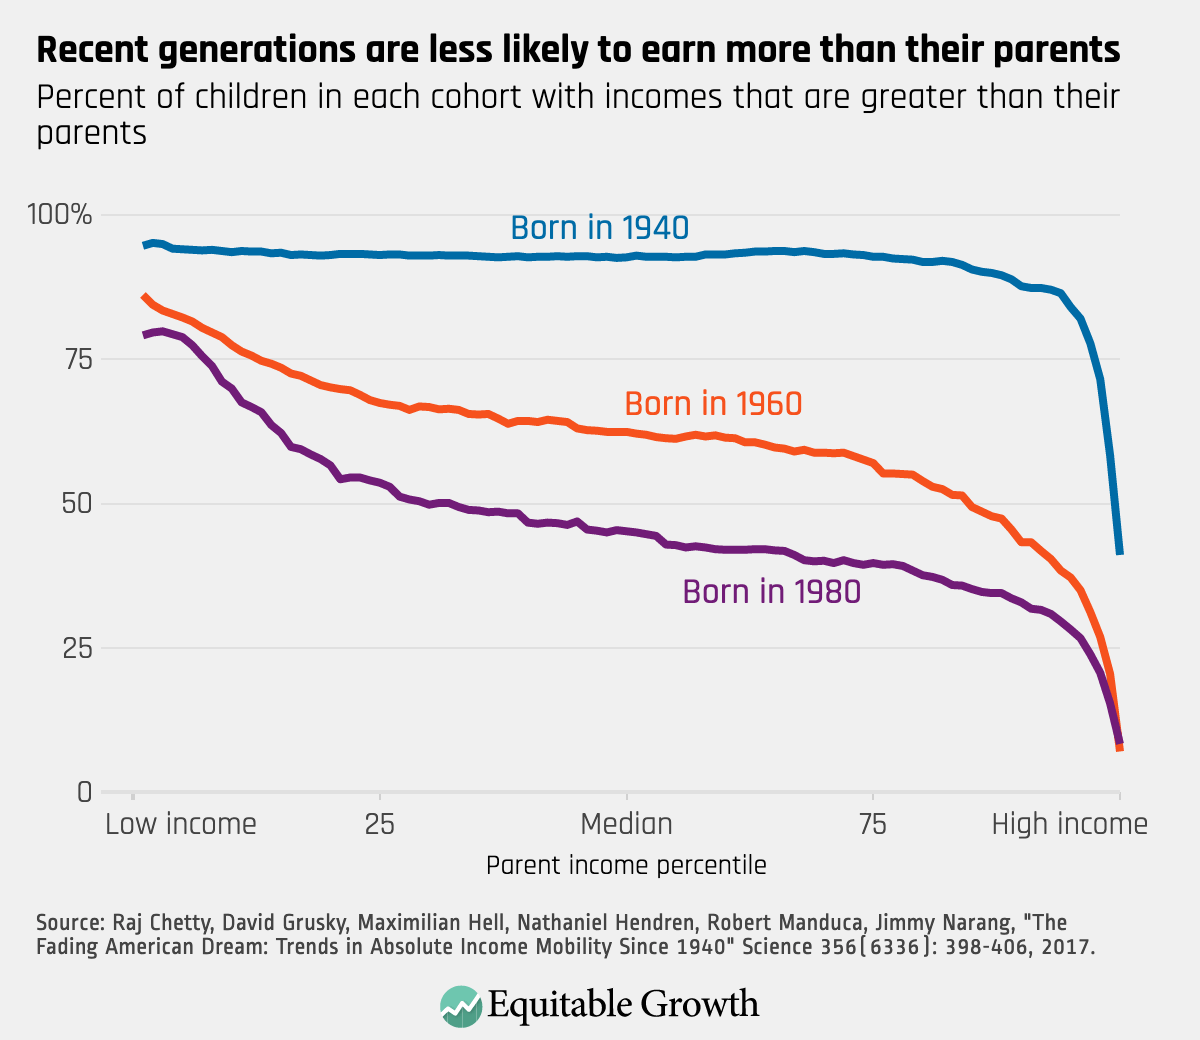 Recent Generations are less likely to earn more than parents